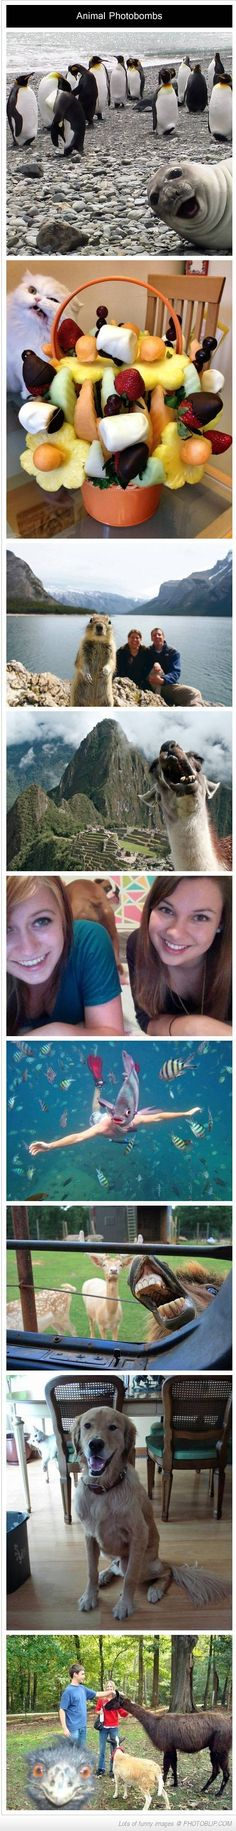 the best animal photo bombs ever